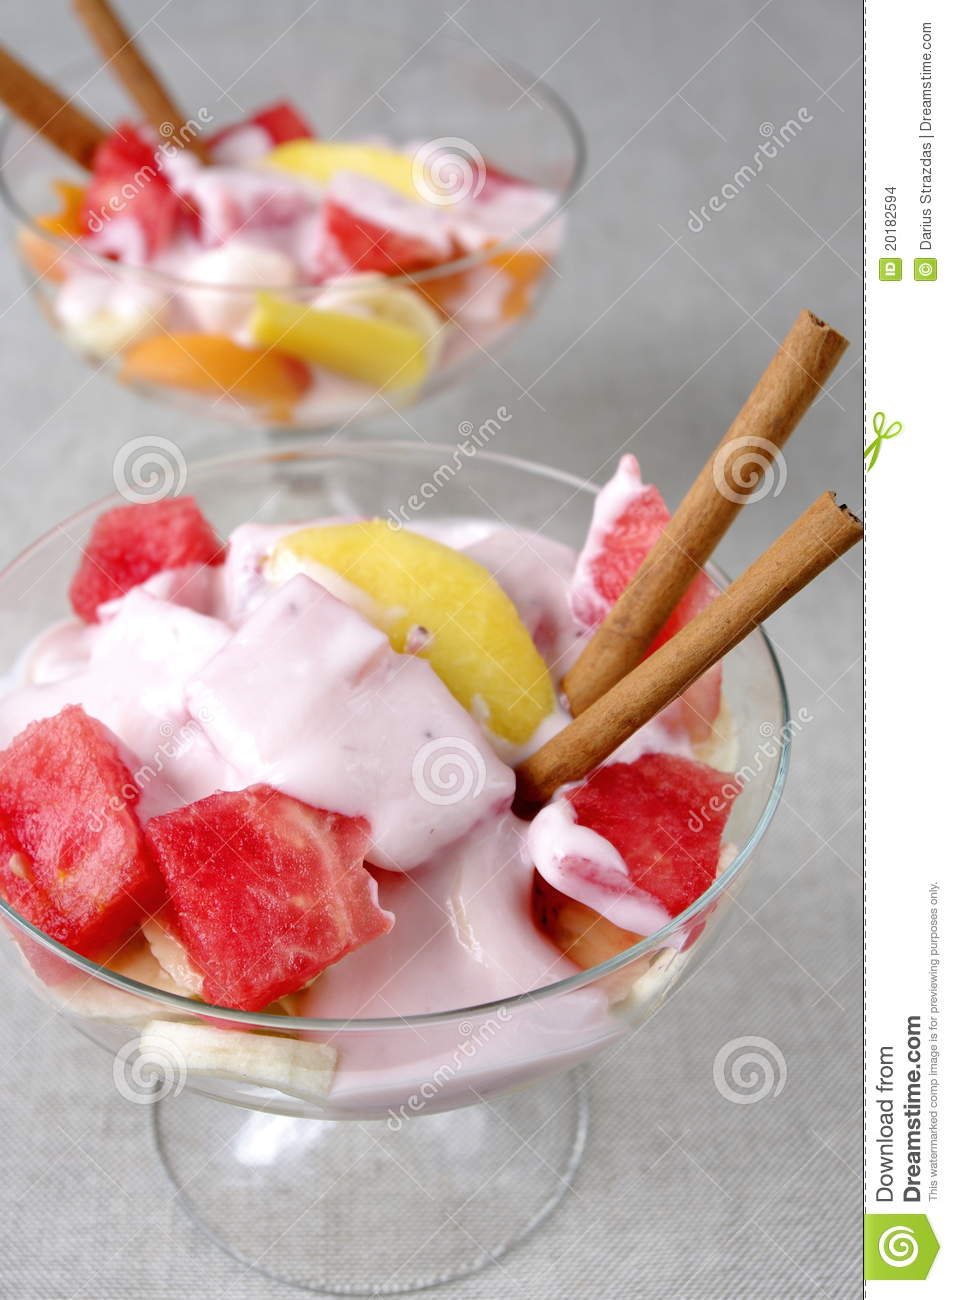 Fruit Salad Of Yogurt Watermelon Bananas Peach Stock Images - Image ...